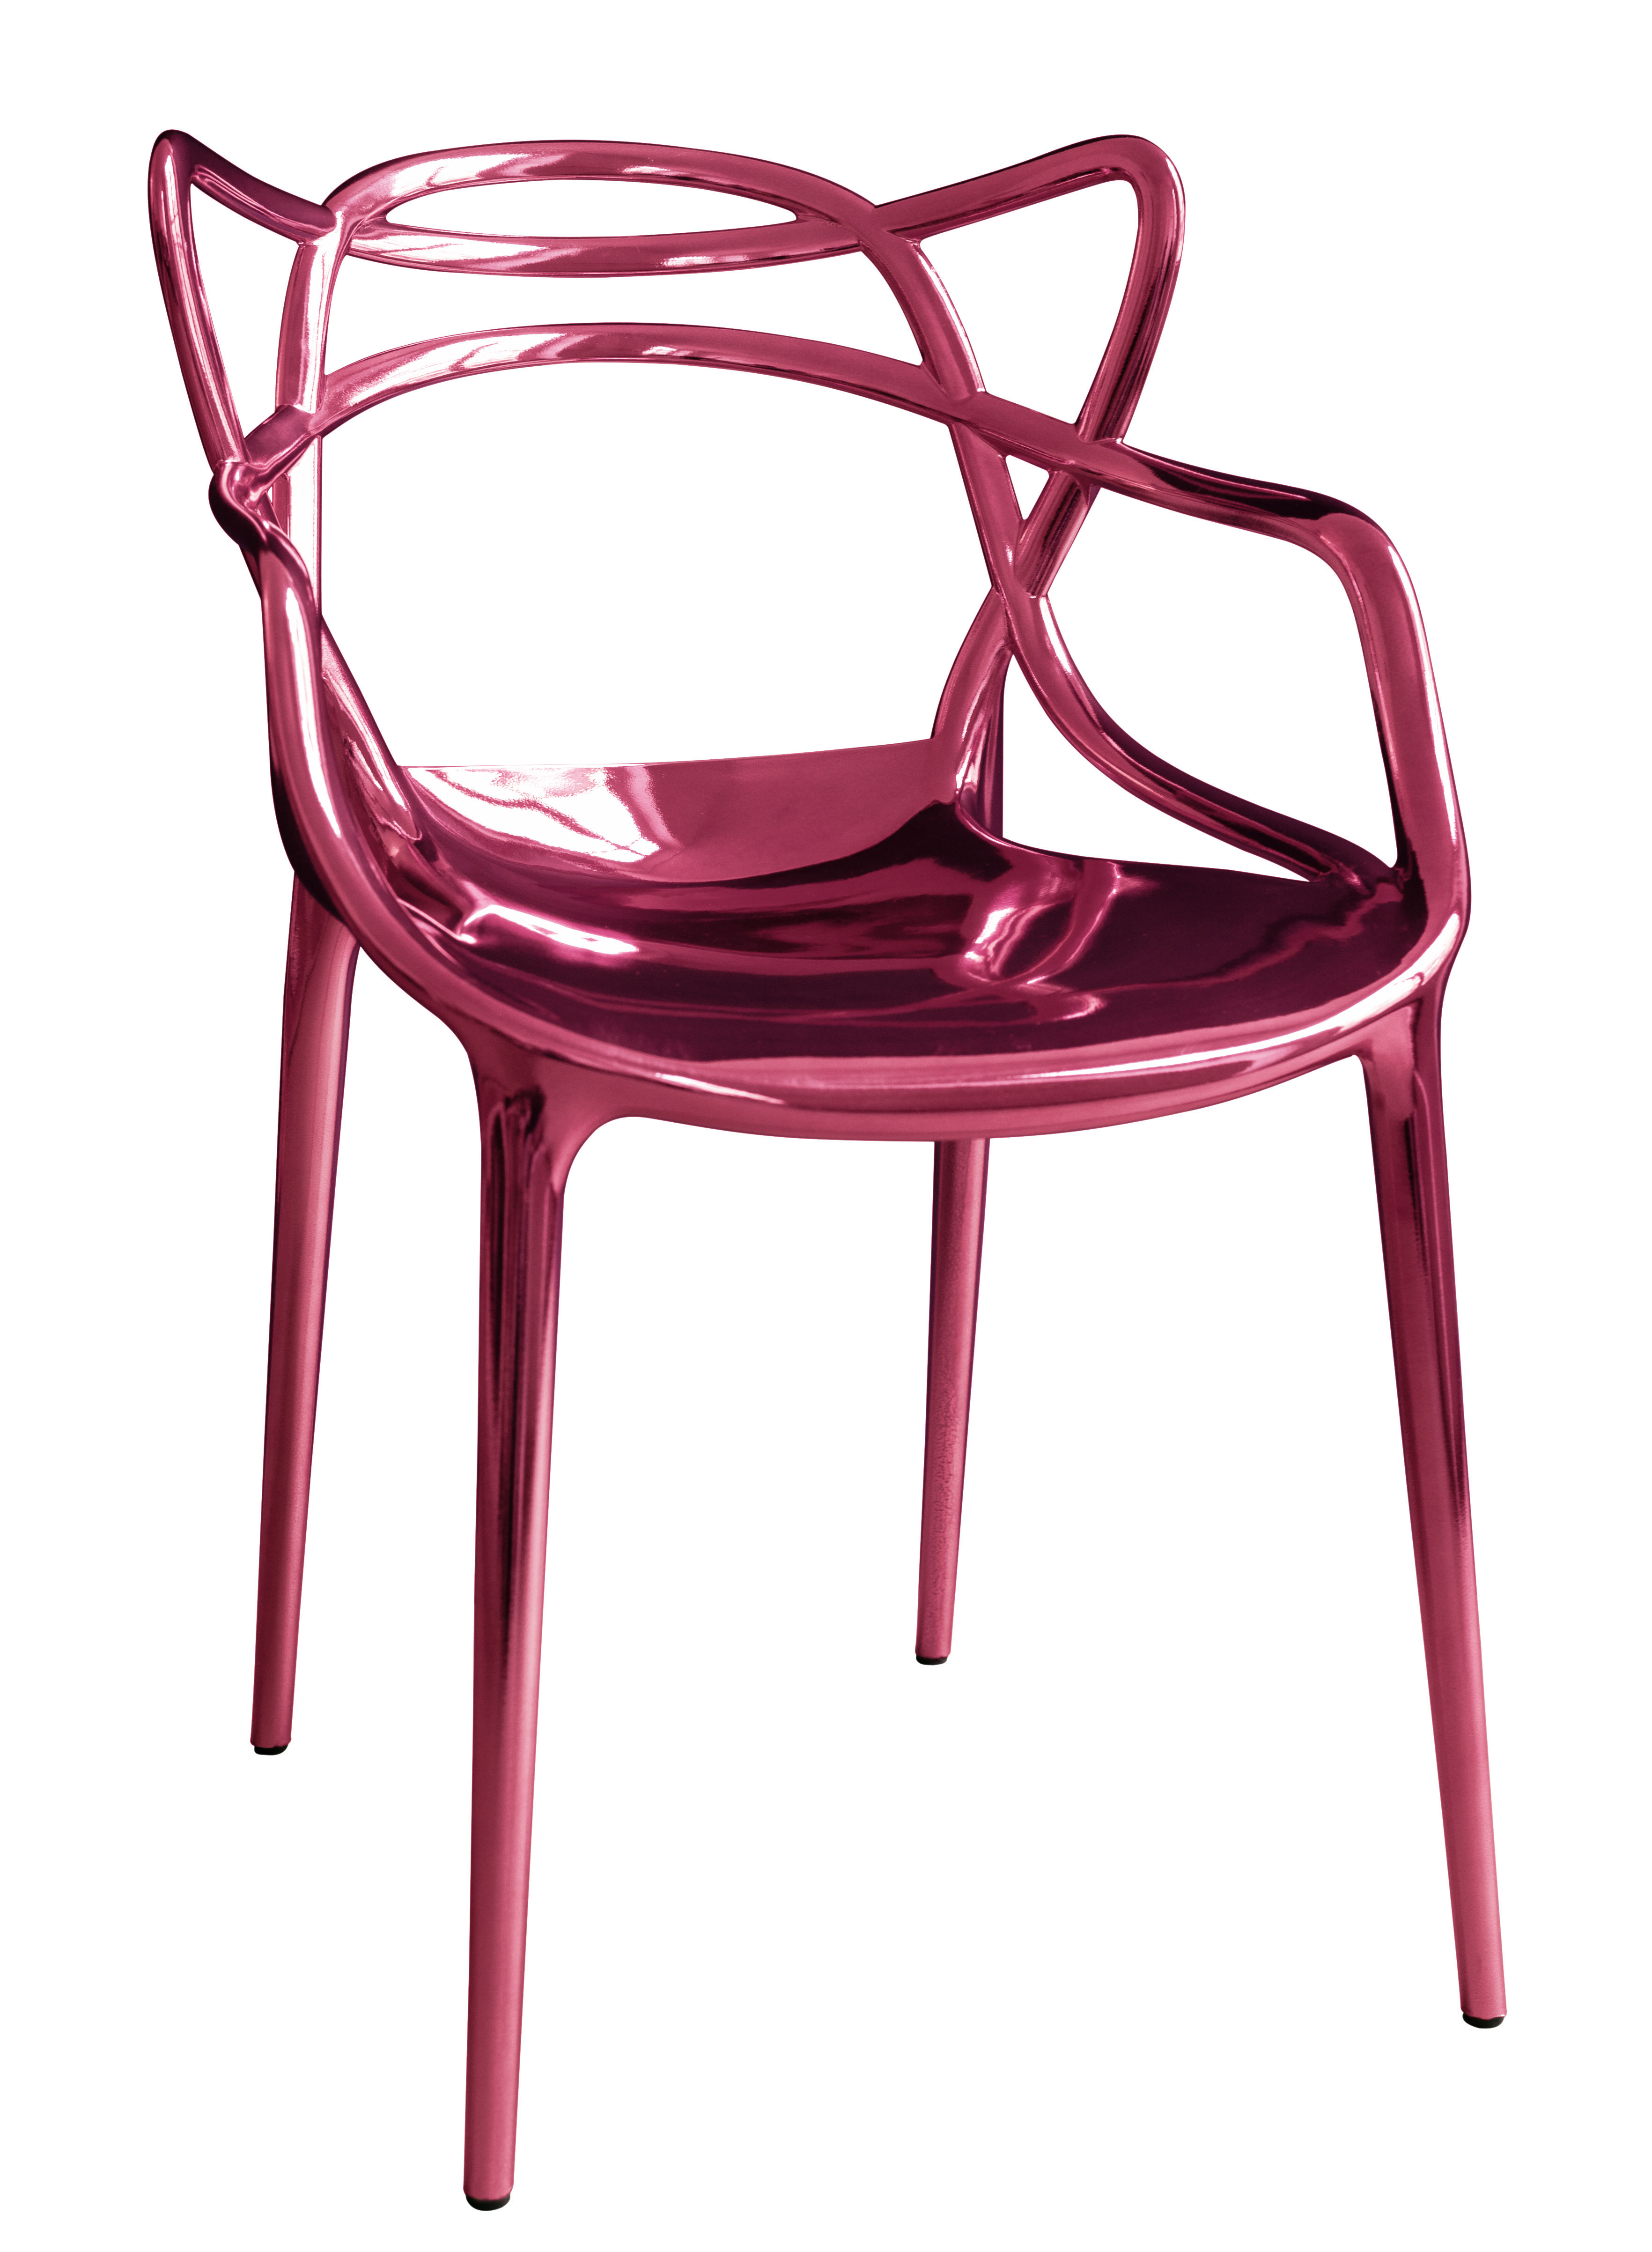 Furniture - Chairs - Masters Stackable armchair - / Metallic - 20 years of MID limited edition by Kartell - Metallic pink - Metallic ABS